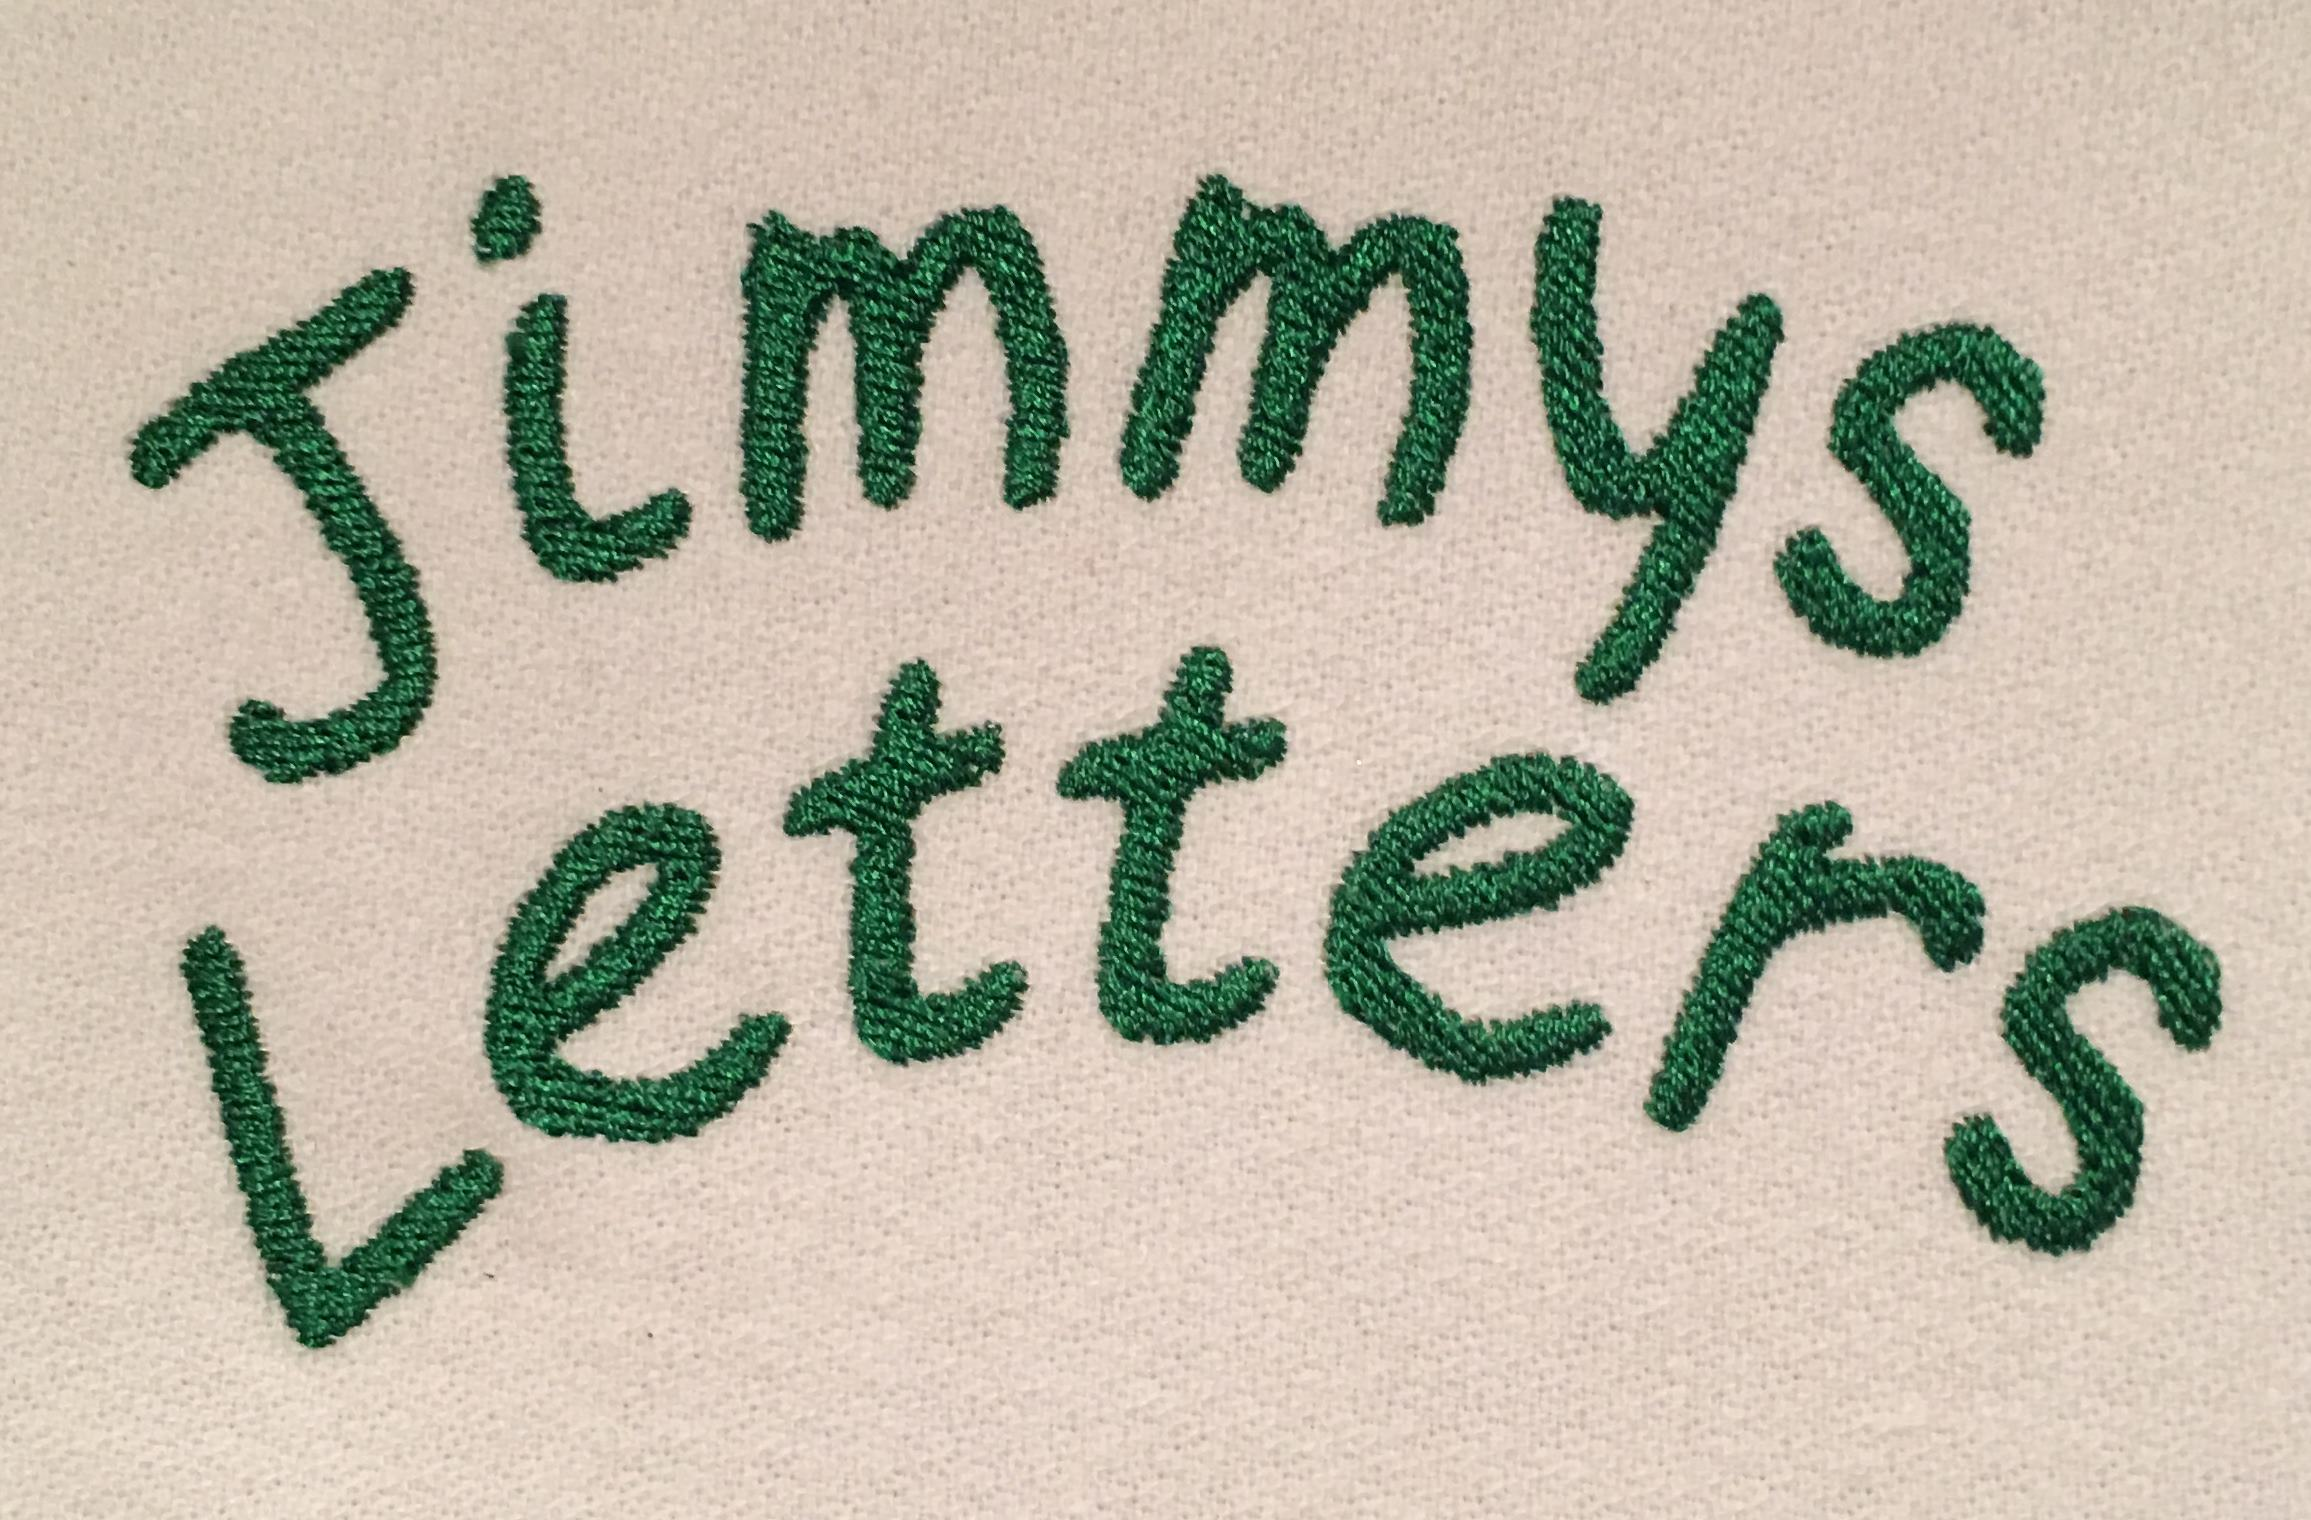 Jimmys letters logo